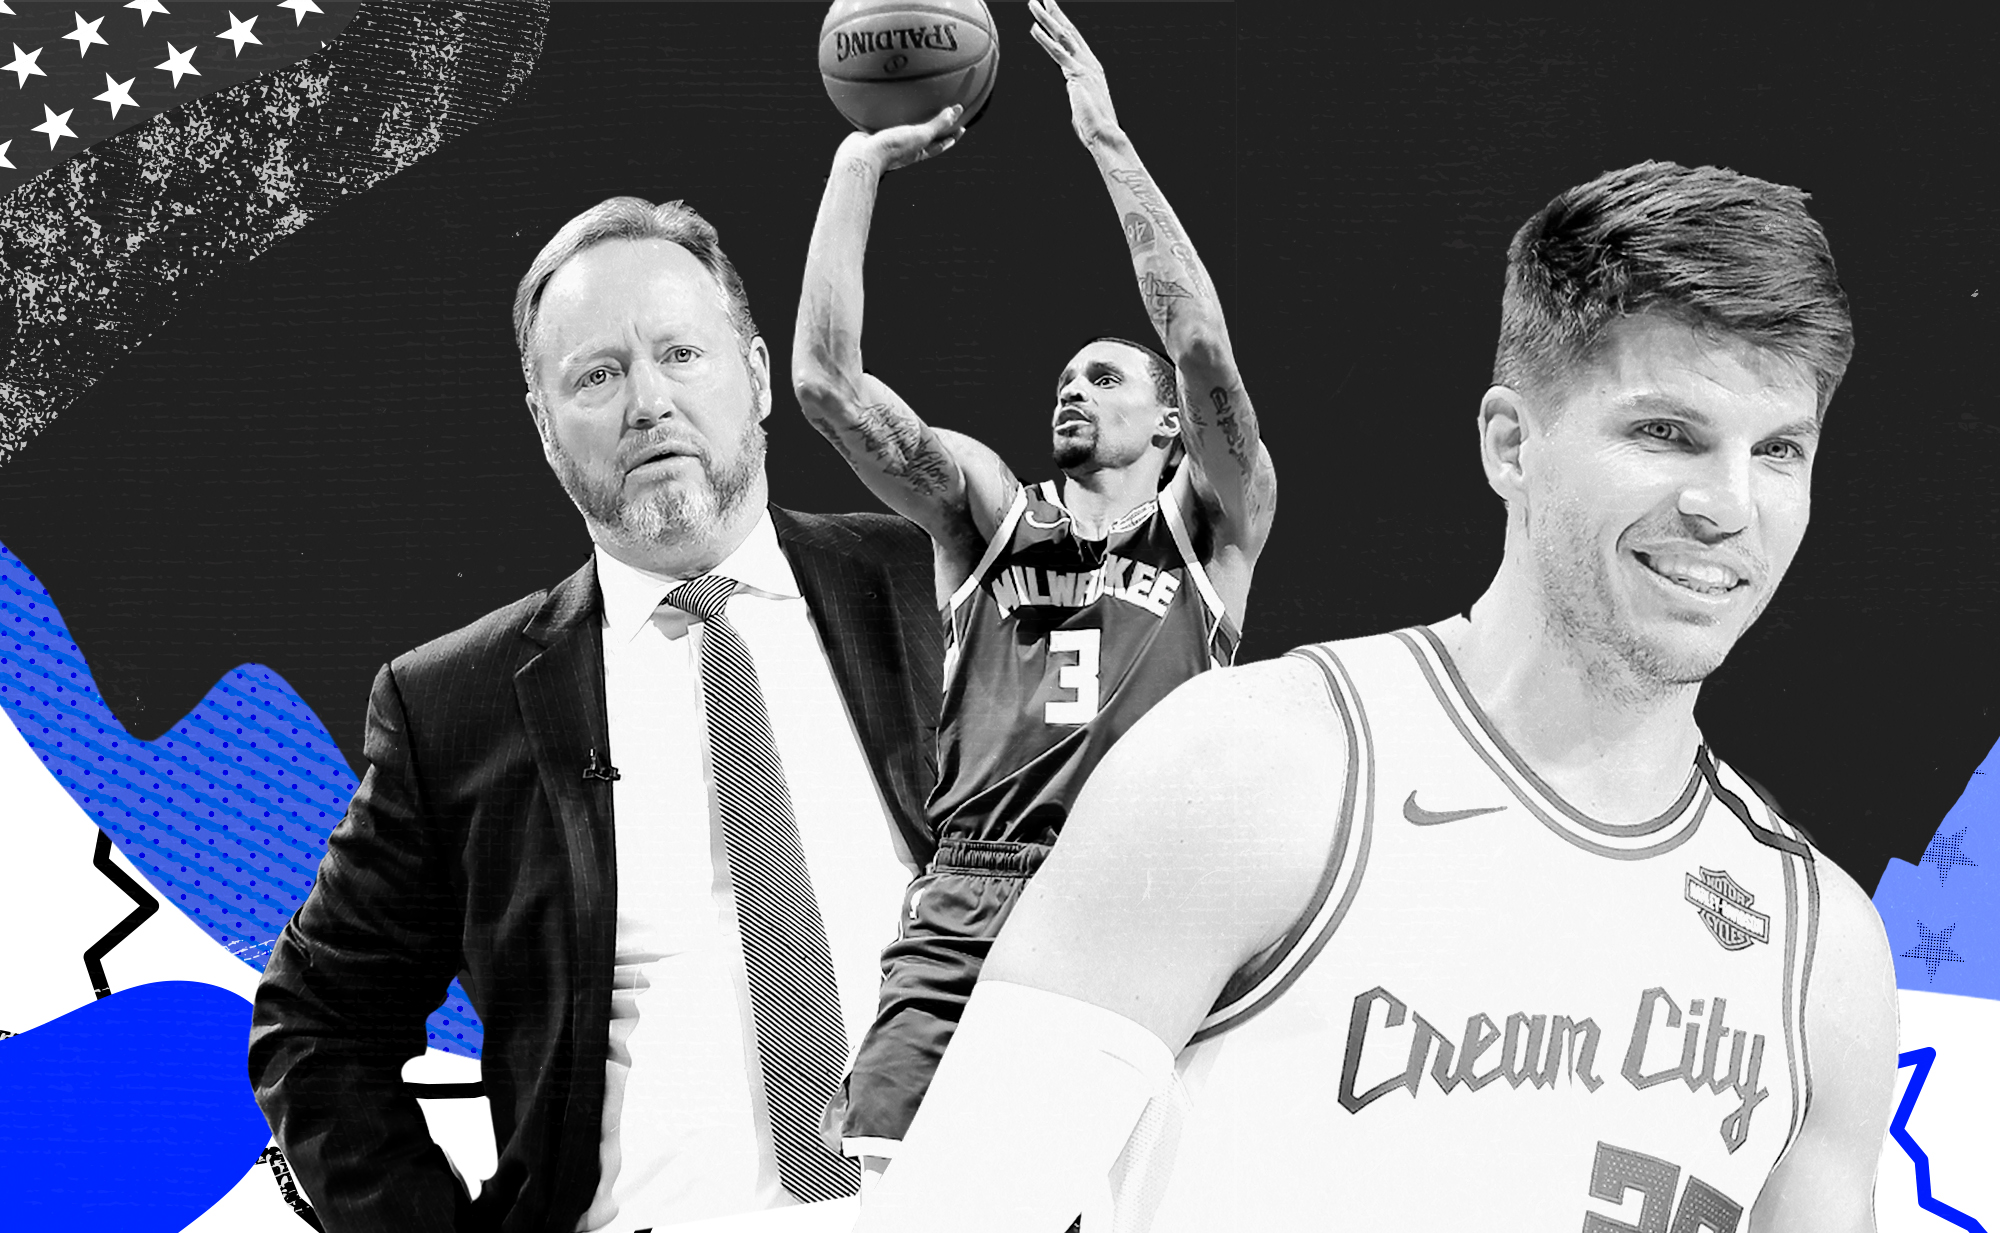 A collage of George Hill (center), Kyle Korver (right), and head coach Mike Budenholzer.